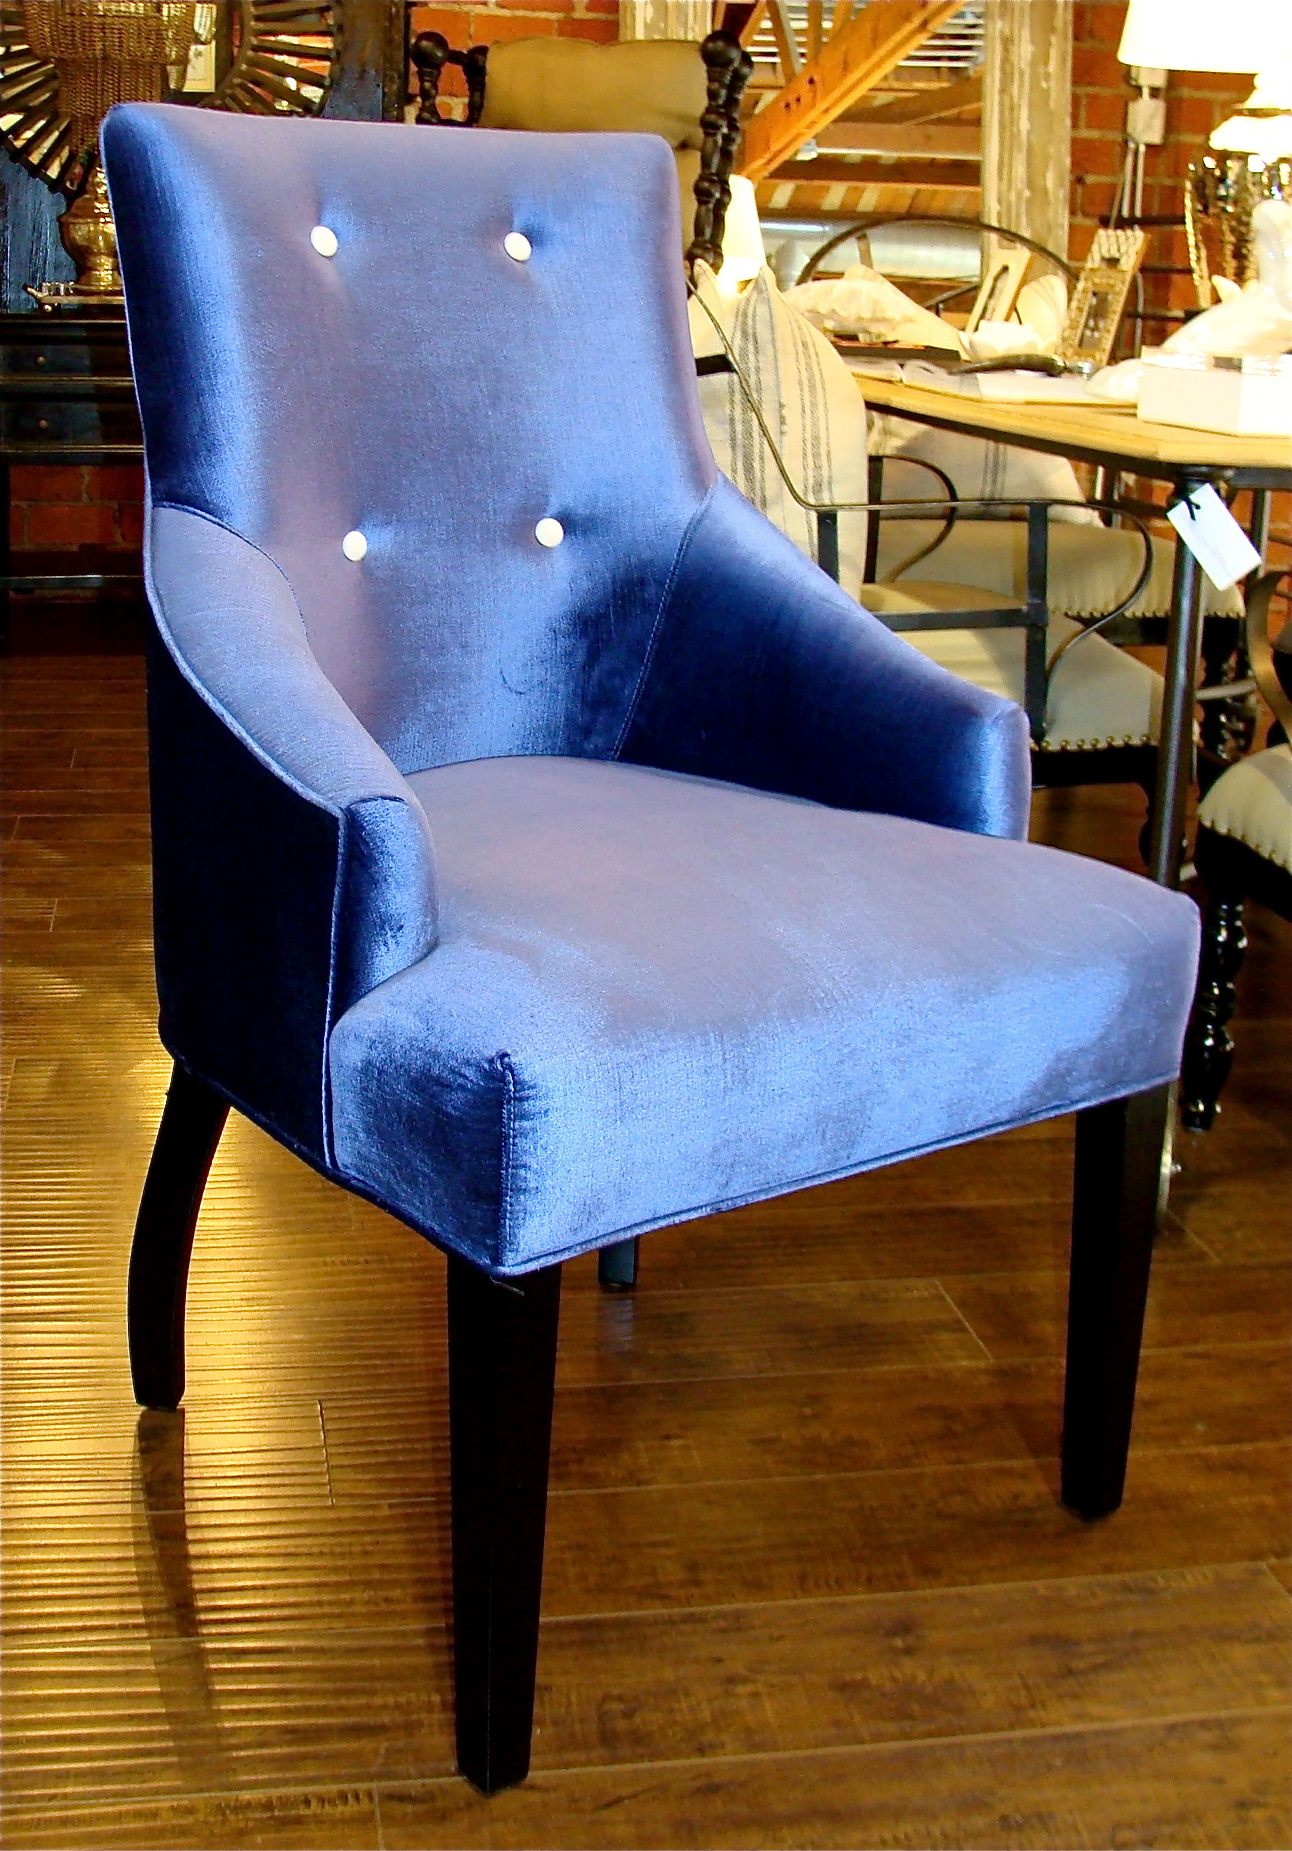 Blue velvet dining chair with white buttons 22 bond st for Dining room velvet chairs